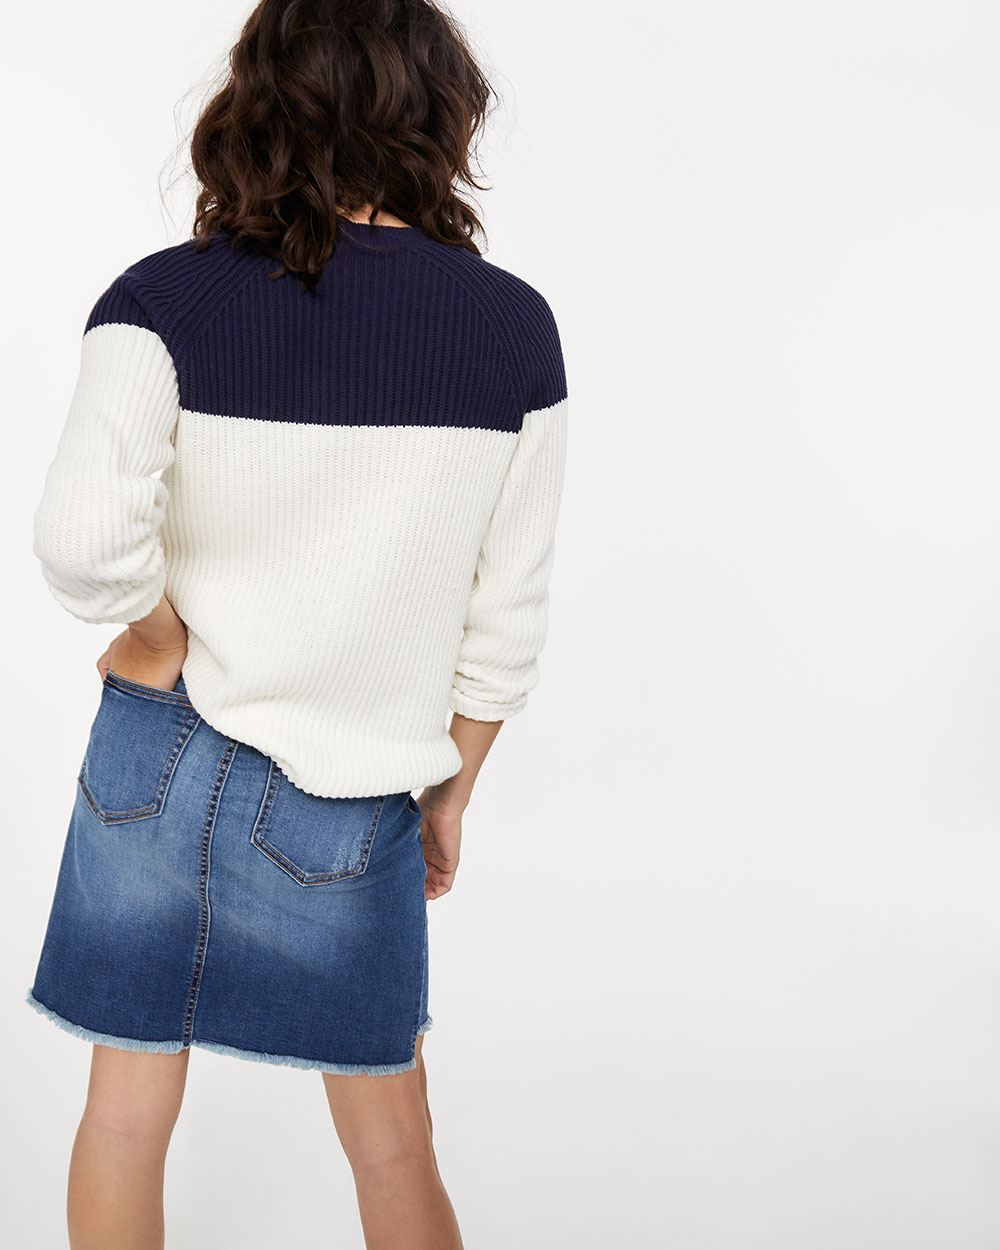 Raglan Sleeve Embroidered Sweater